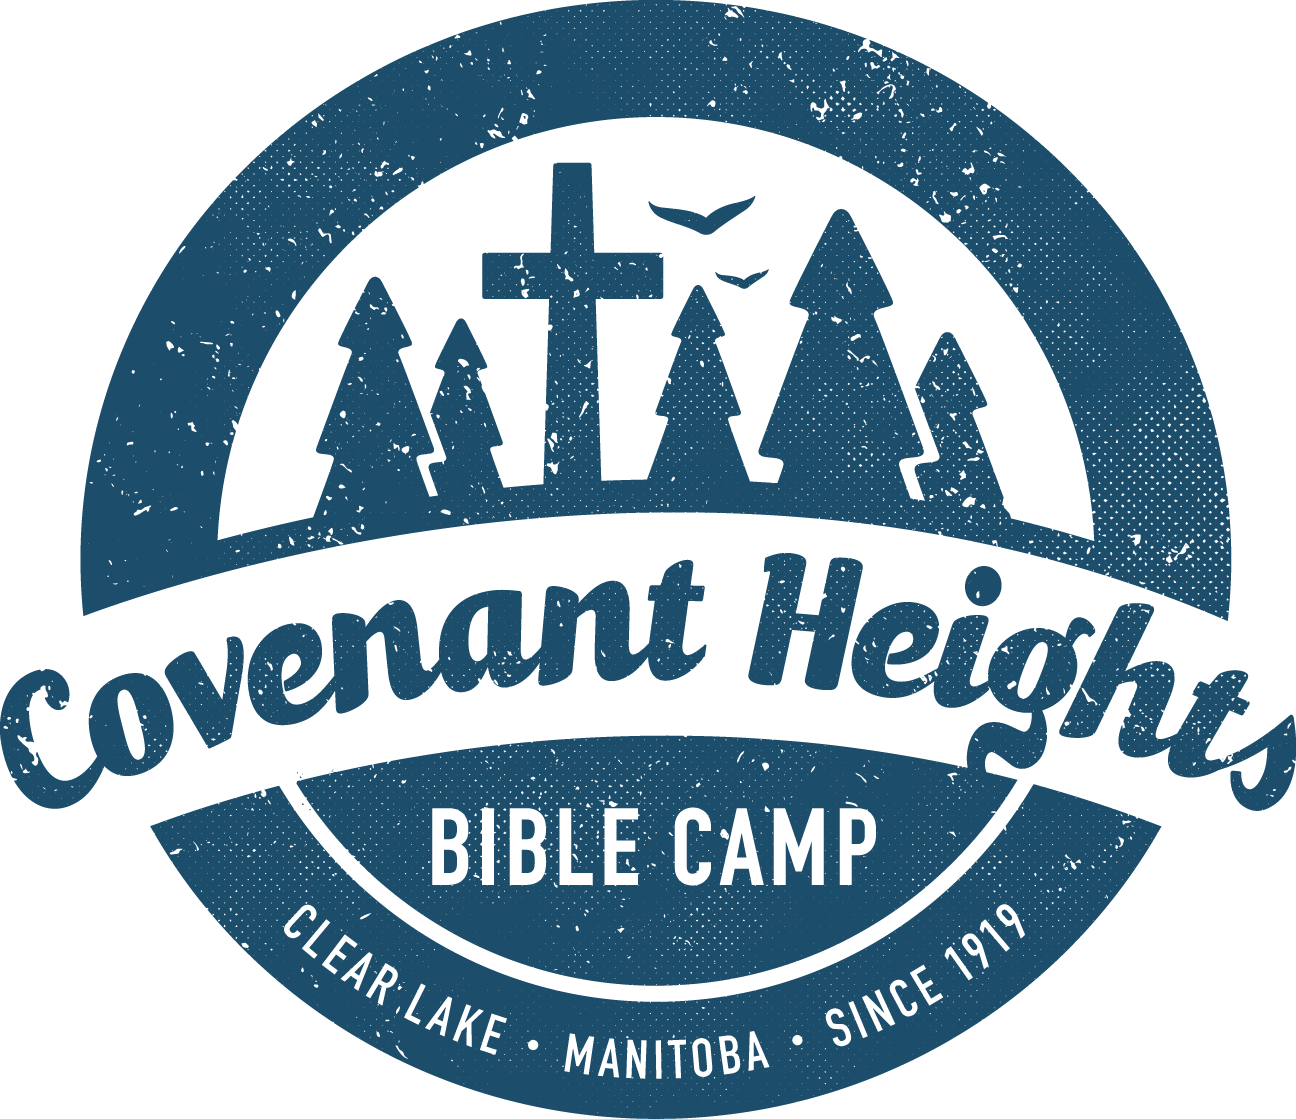 Covenant Heights Bible Camp